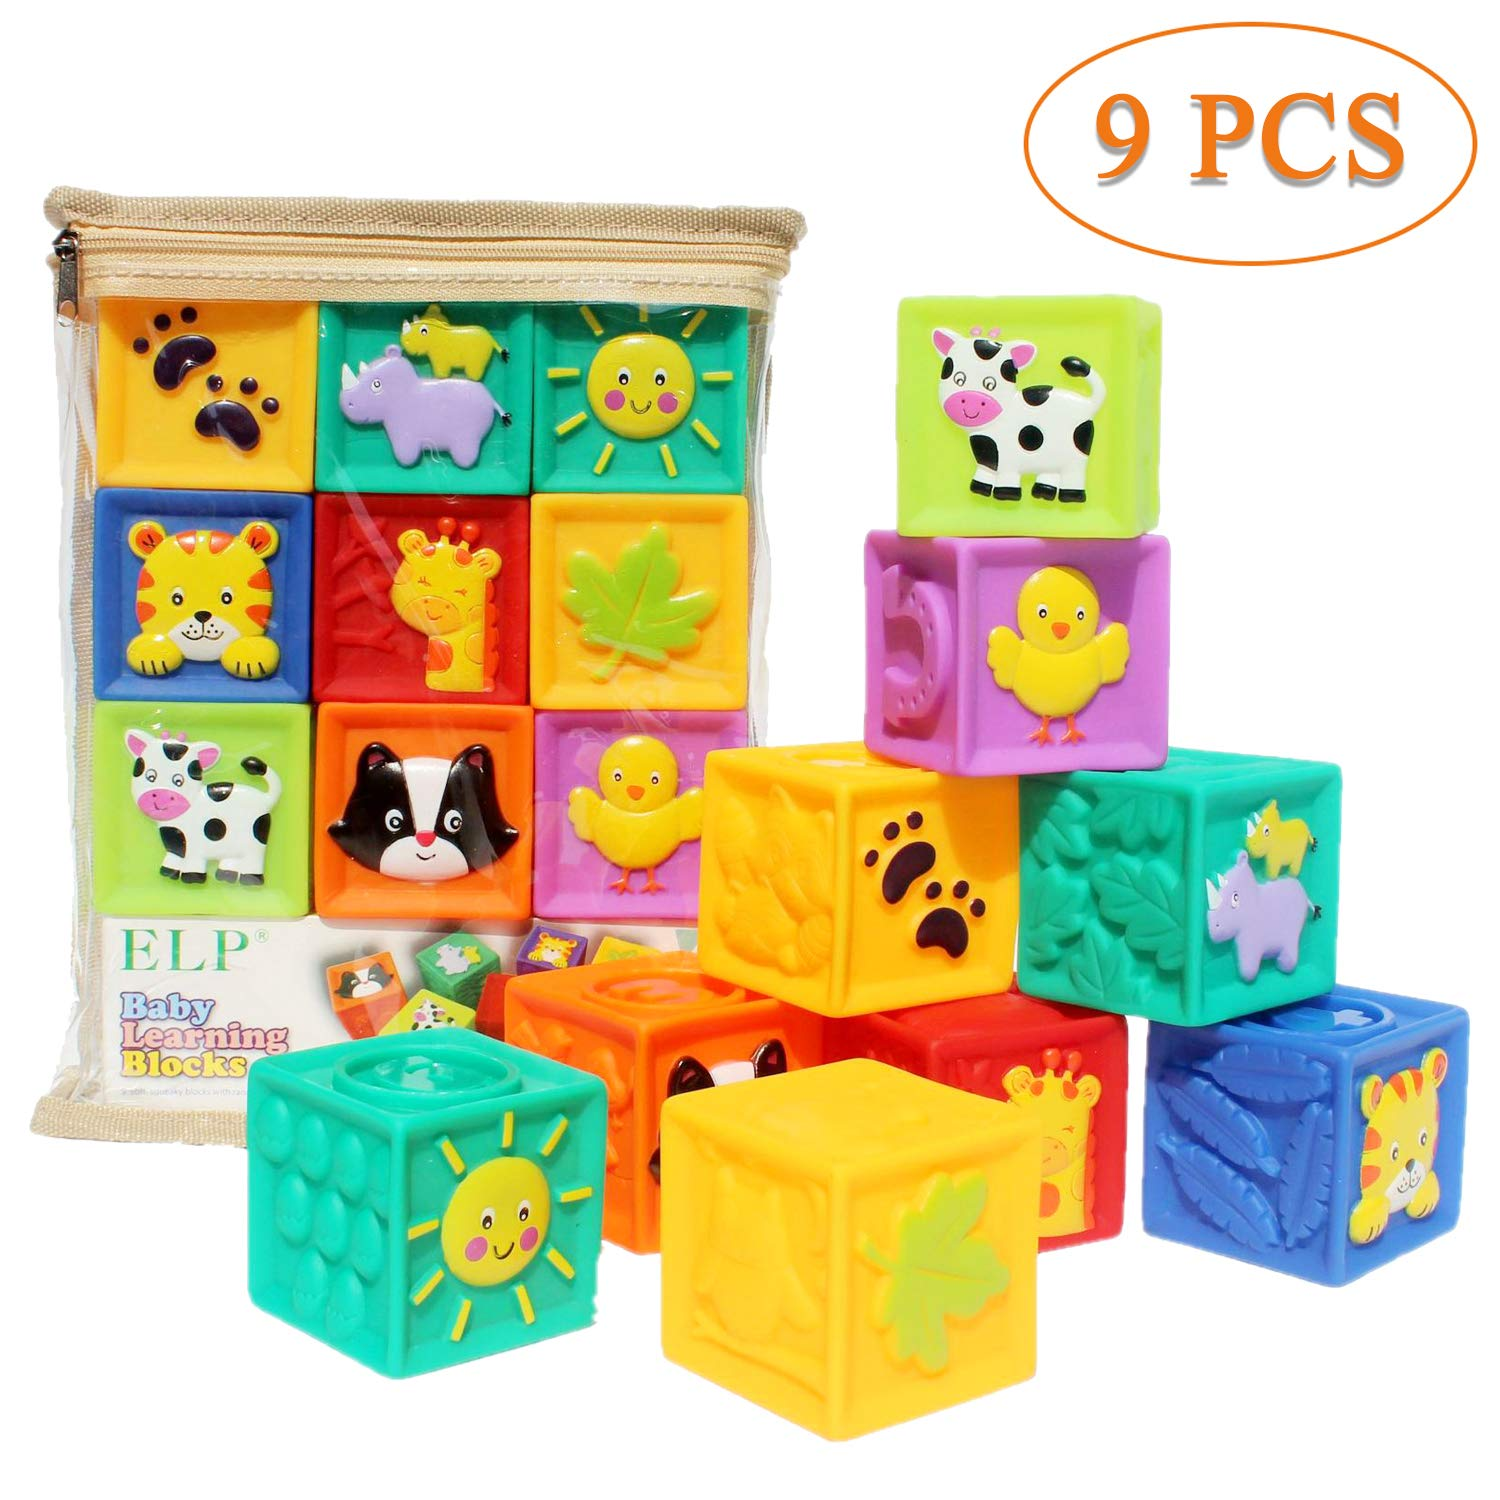 Kingtree Squeeze and Stack Block Set, Soft Building Blocks Teething Chewing Toys for Toddlers 6 months and up with Numbers & Animals BPA Free (Set of 9)